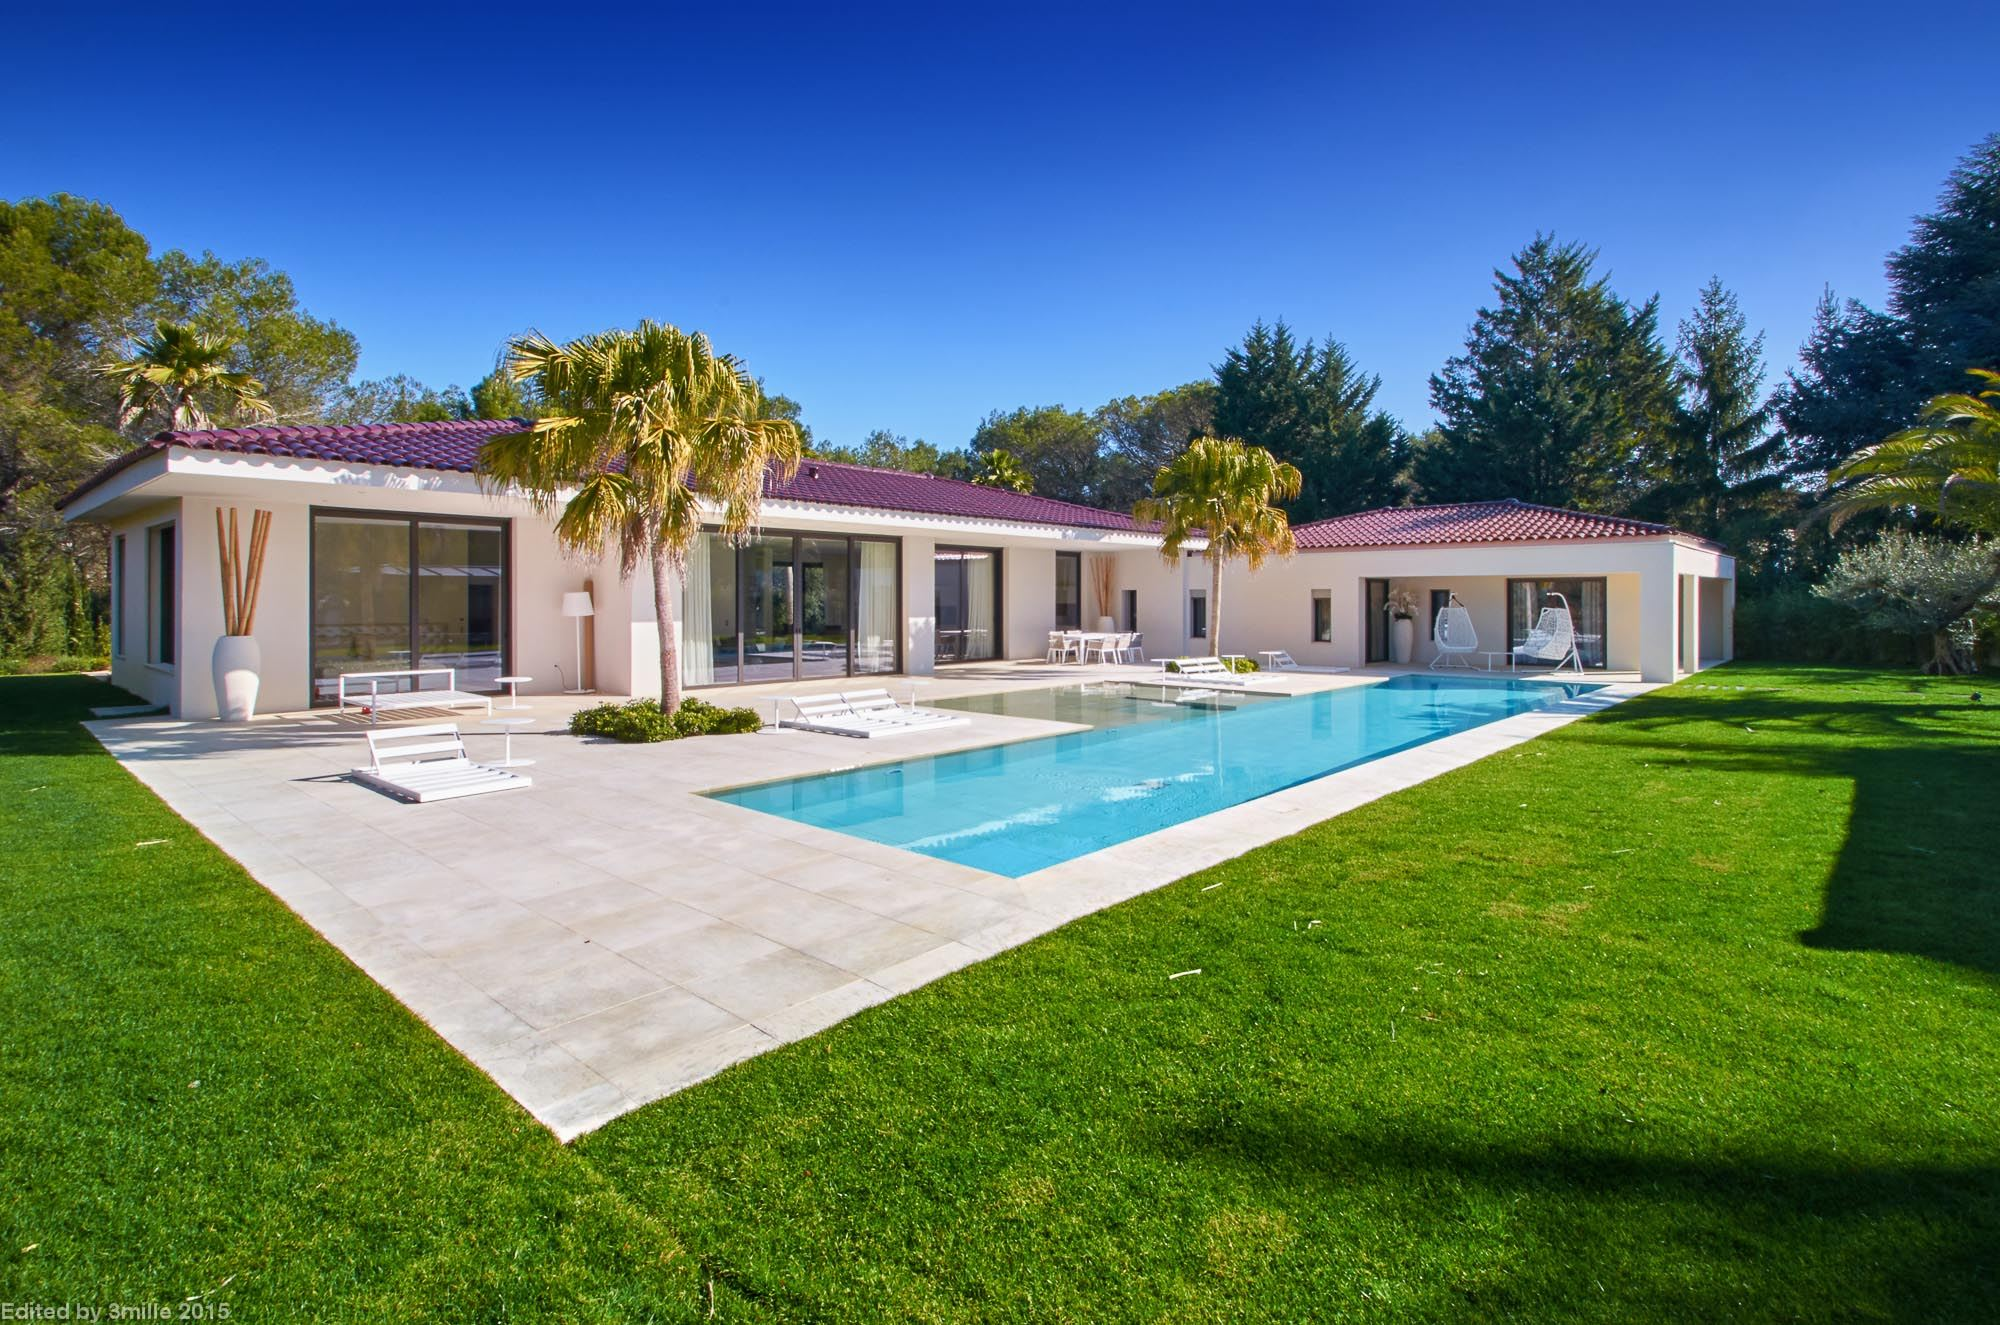 Single Family Home for Sale at Mougins - Contemporary house for sale in a gated domain Mougins, Provence-Alpes-Cote D'Azur, 06250 France